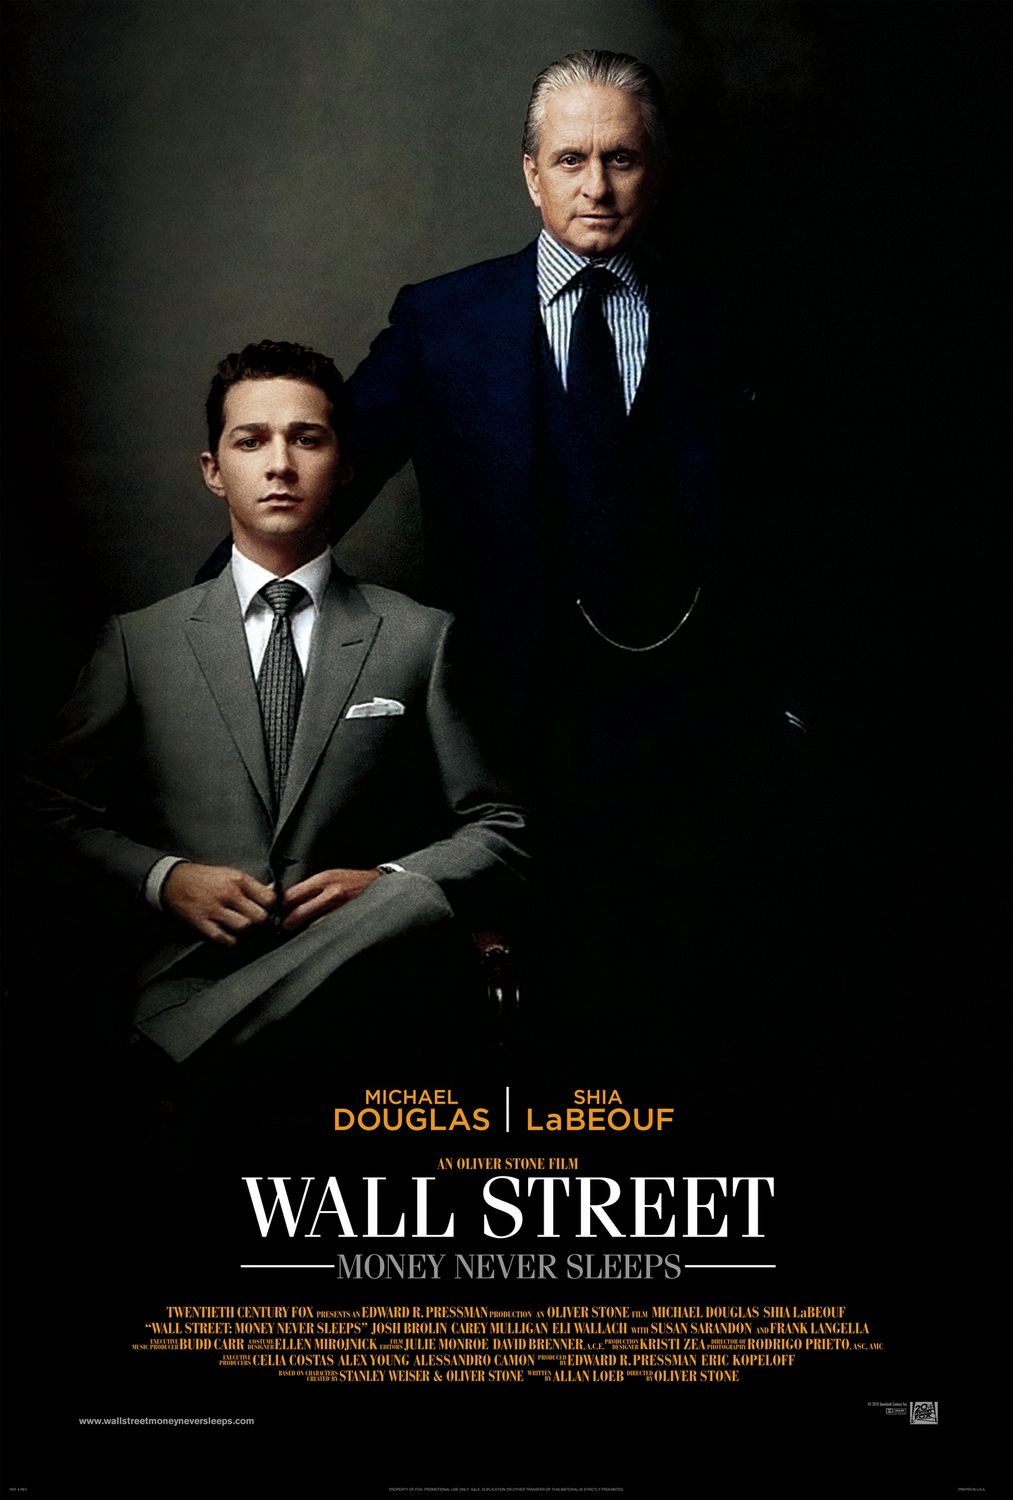 Wall Street Money Never Sleeps 2013 C C Movie Reviews